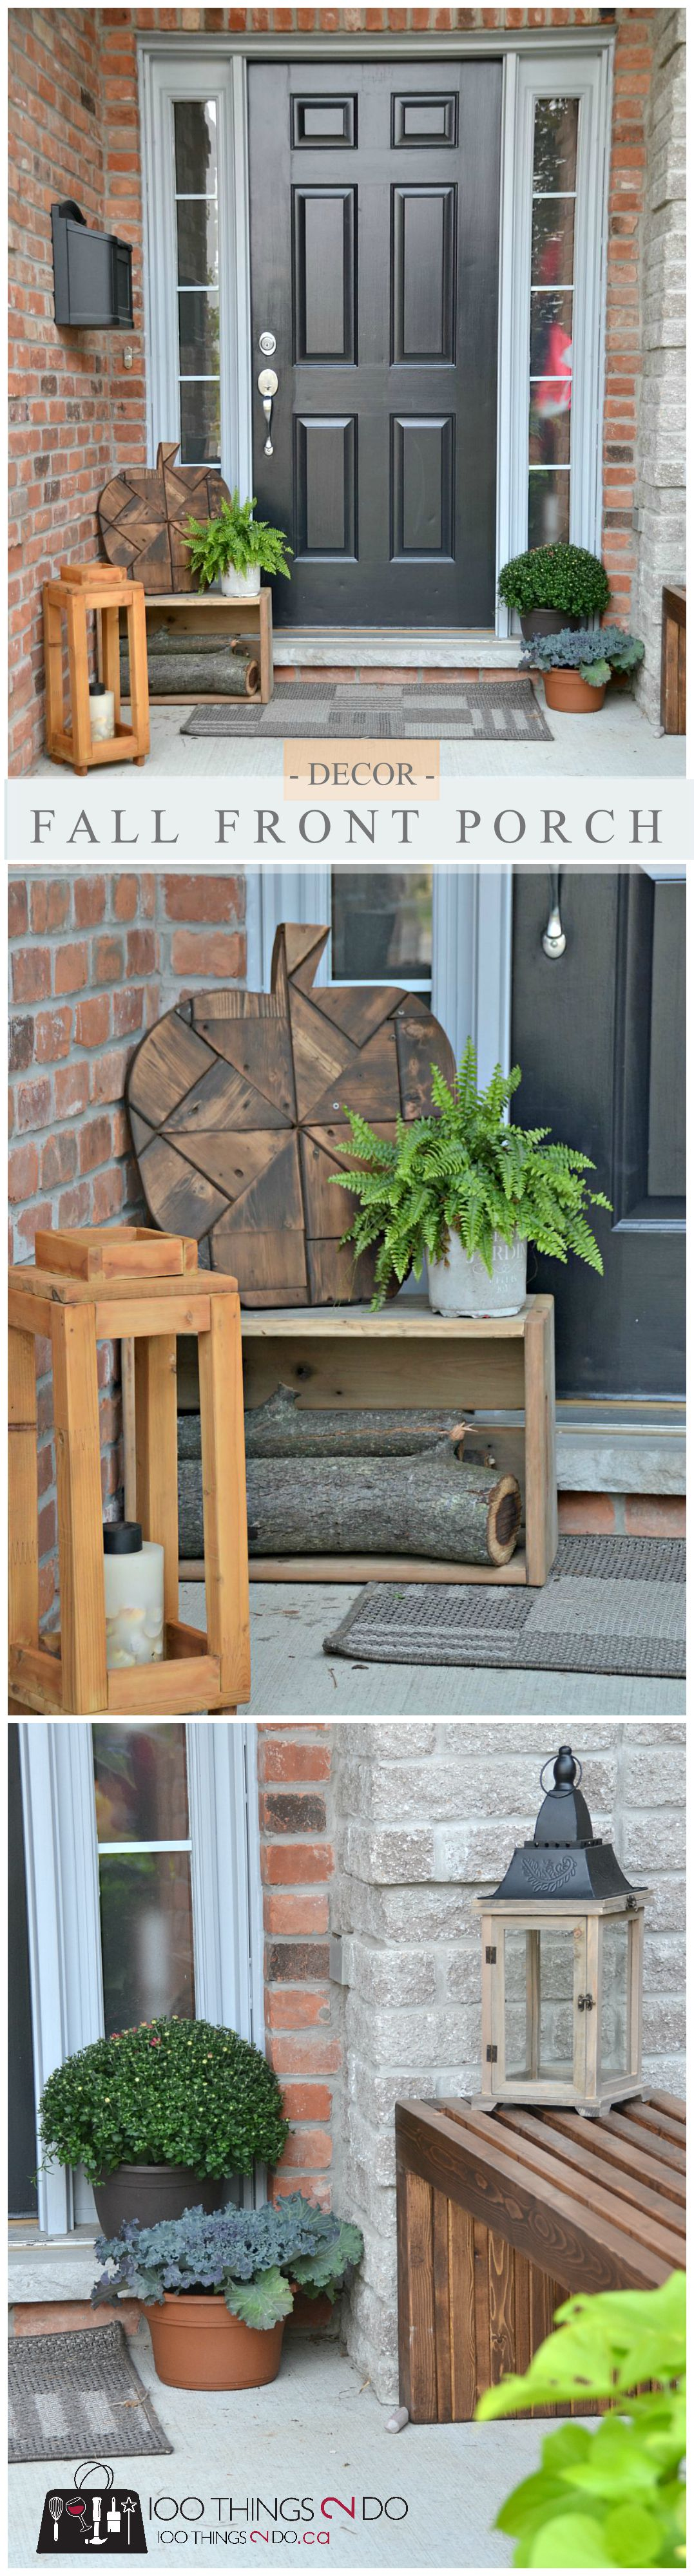 Front porch ideas - decorating for Fall